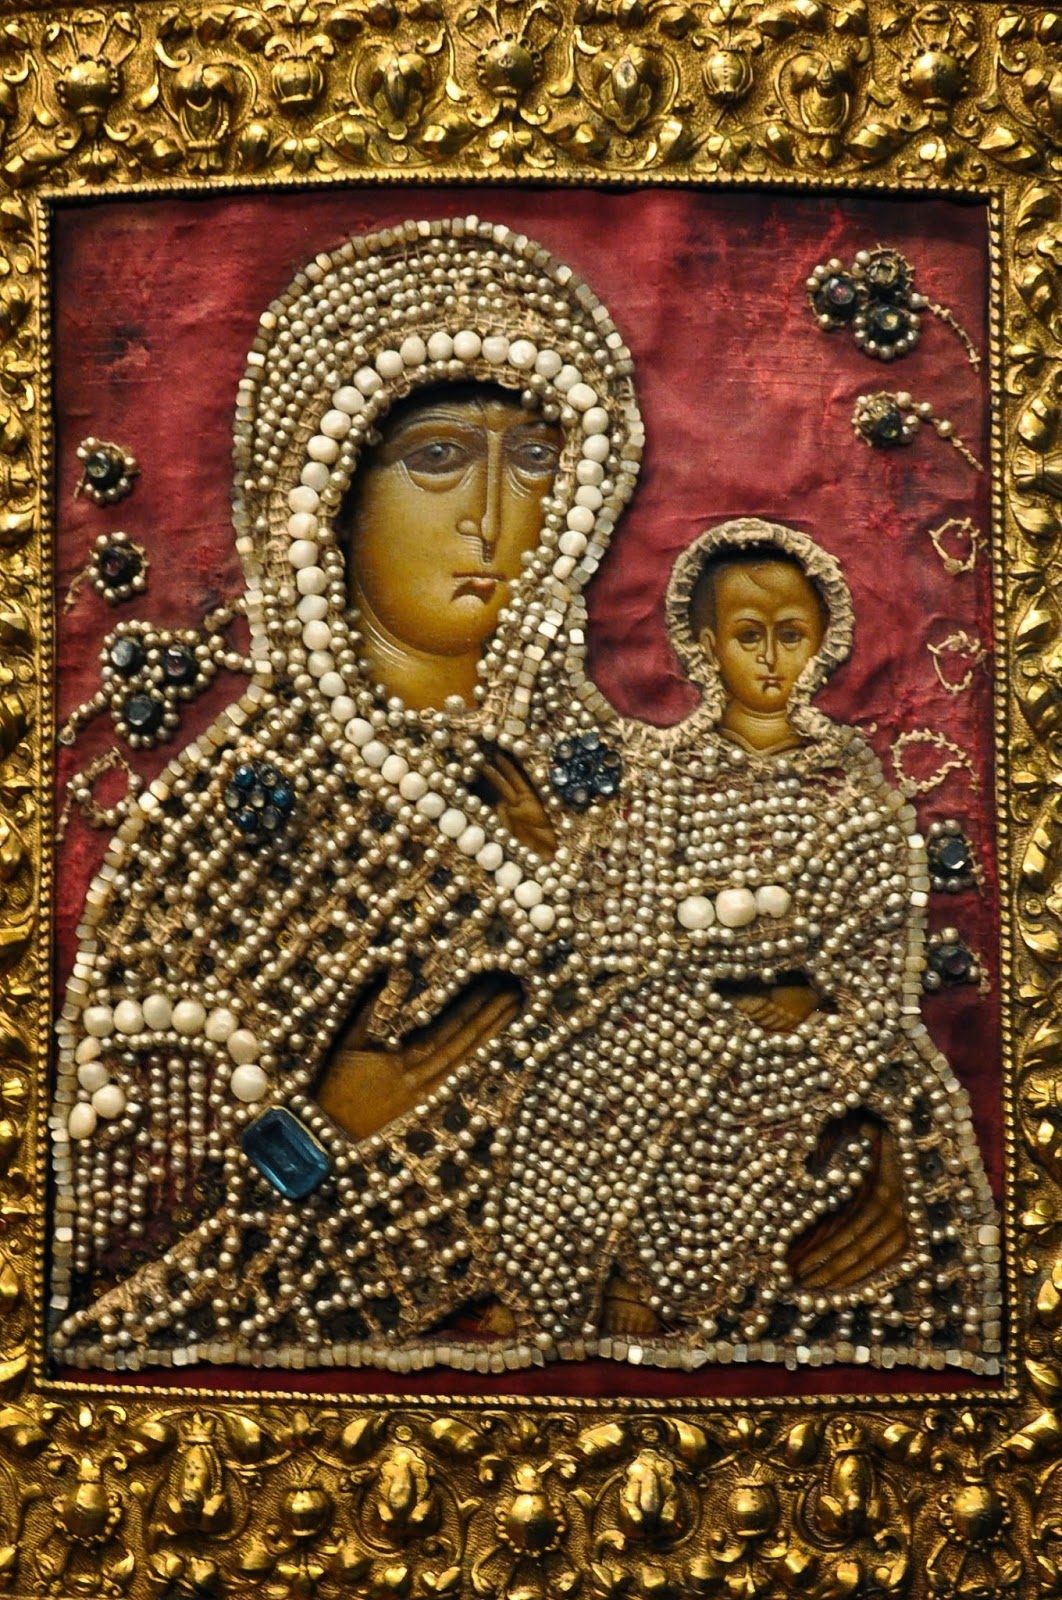 A Russian icon with an embossed metal and strung freshwater pearls covering, Gallerie d'Italia, Palazzo Leoni Montanari, Vicenza, Italia